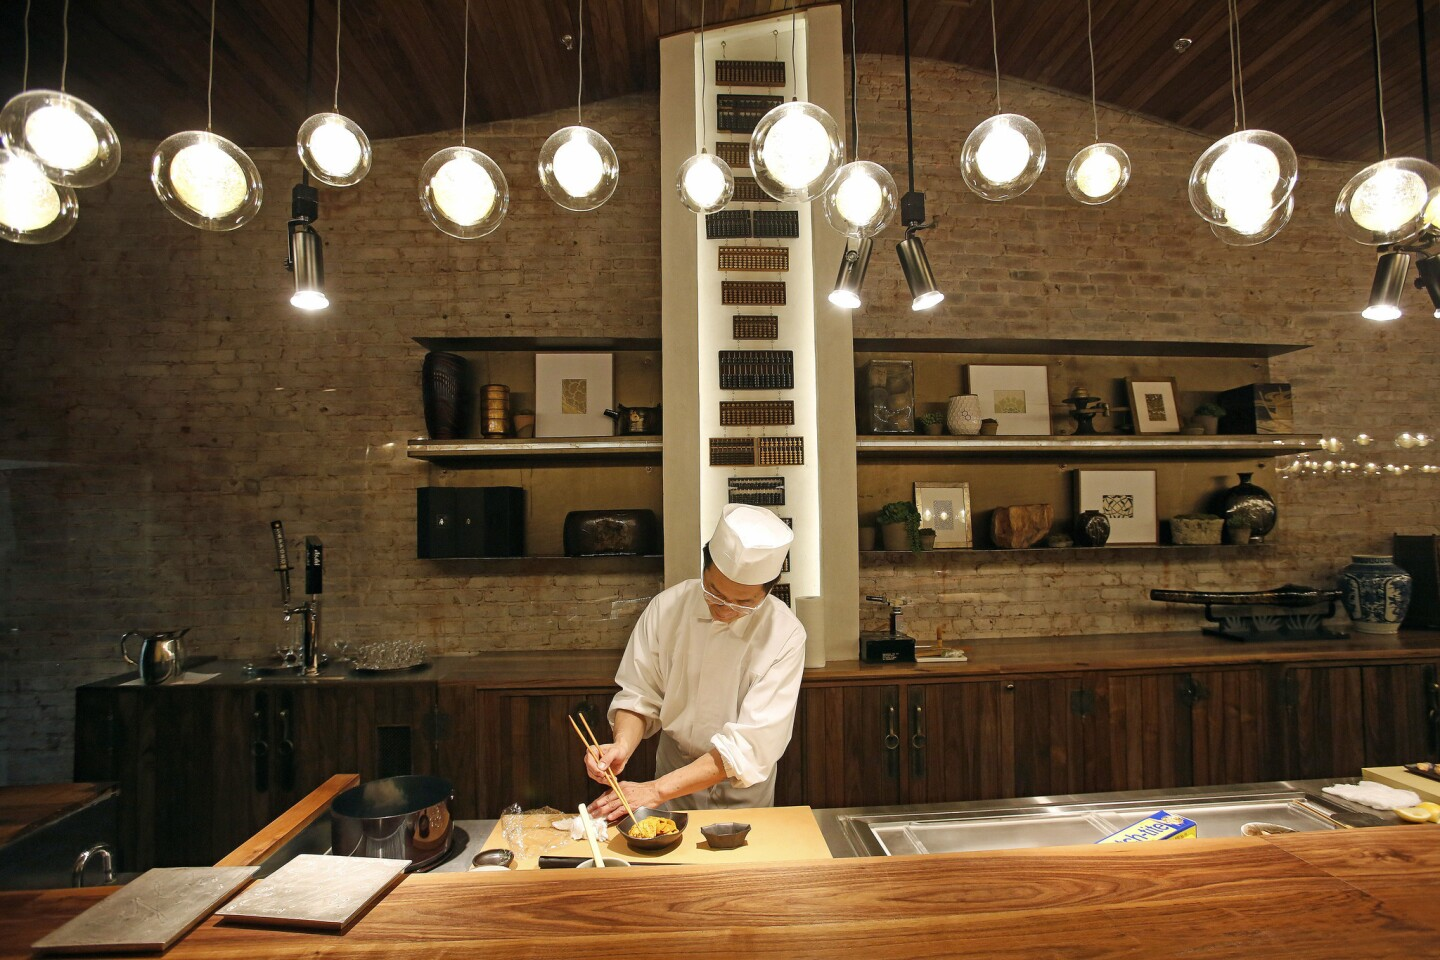 Sushi chef Hiroyuki Naruke moved from Tokyo to Los Angeles at the request of L.A. lawyers.